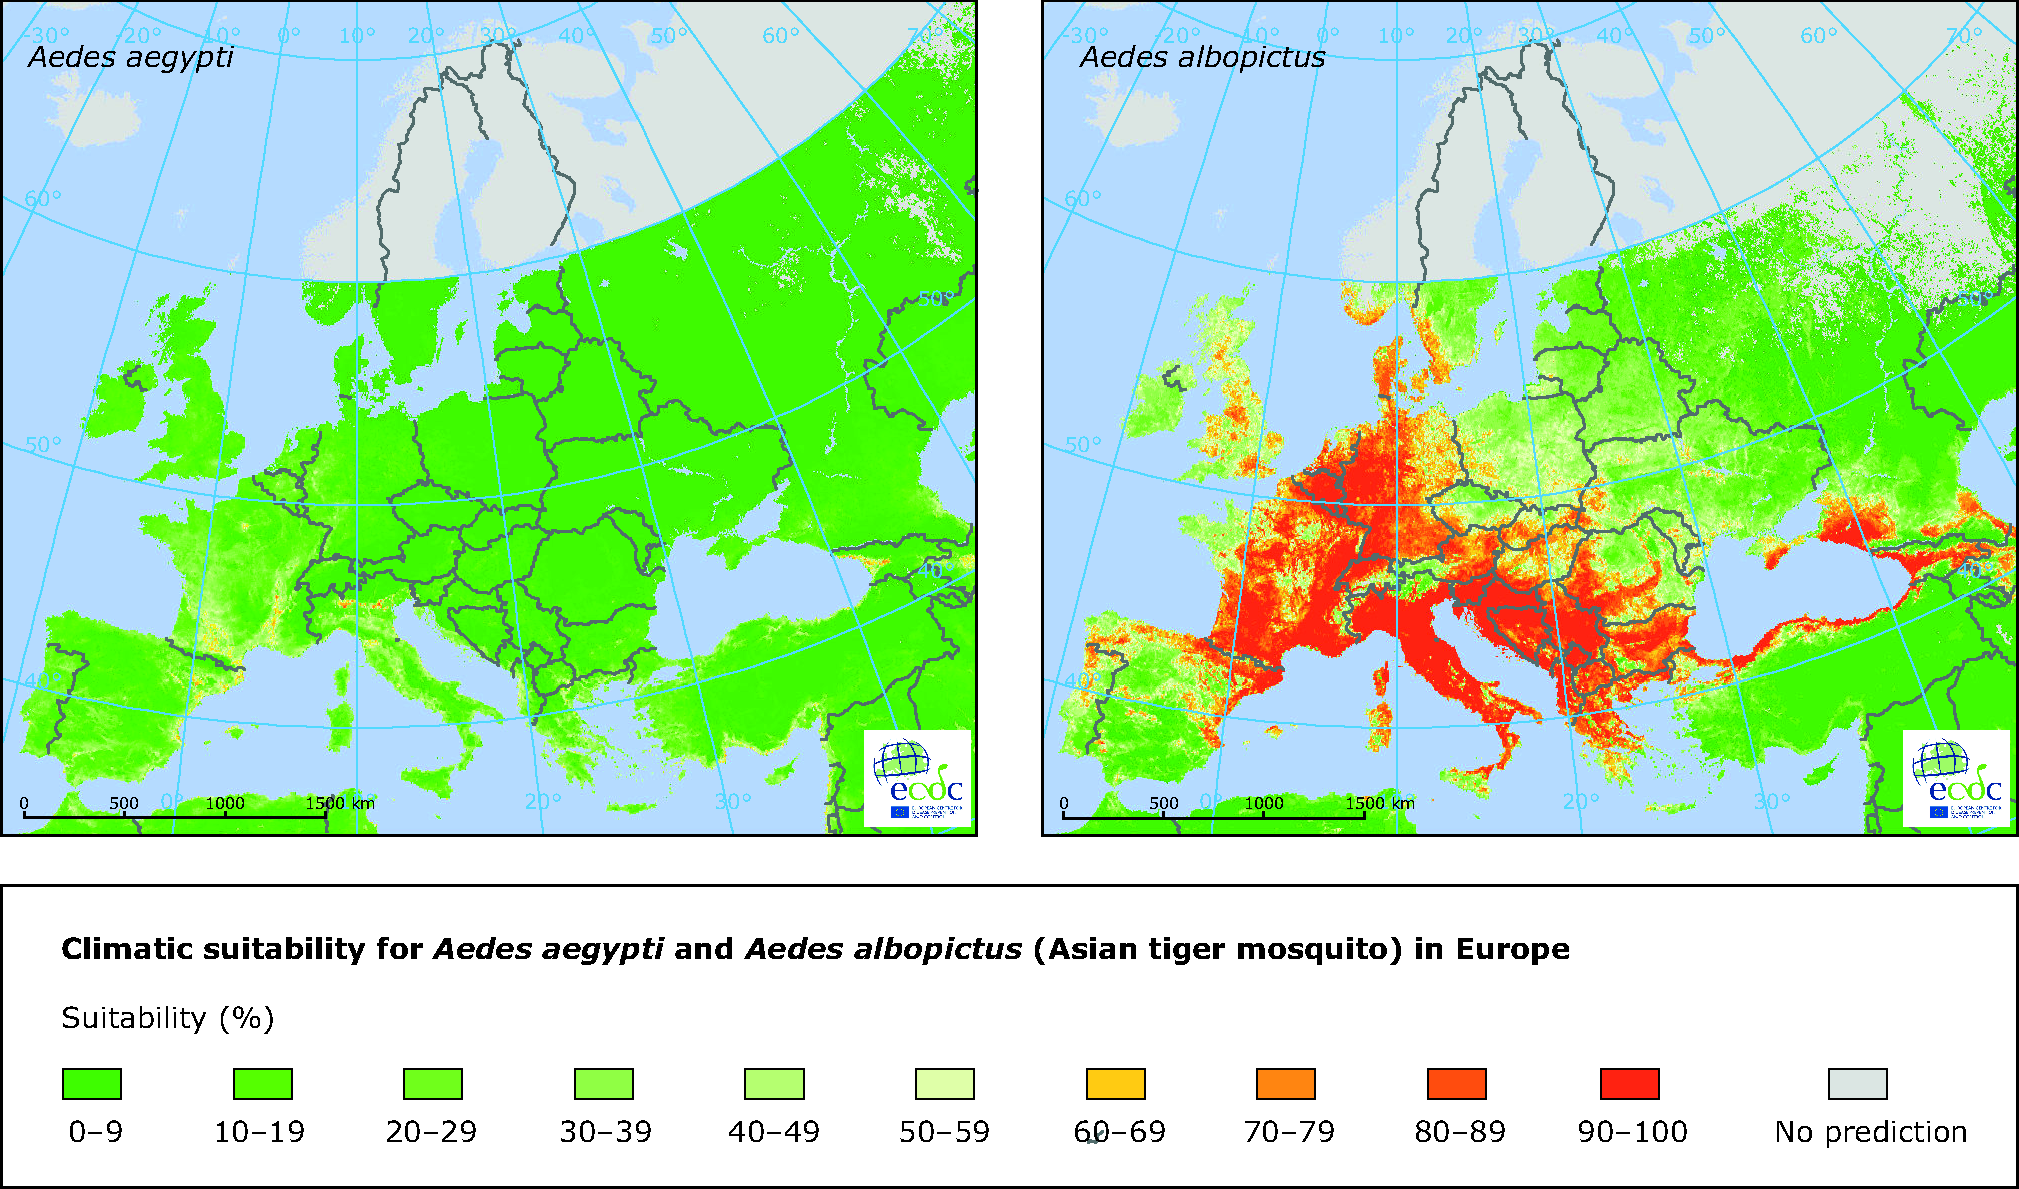 Climatic suitability for the mosquitos Aedes aegypti and Aedes albopictus in Europe